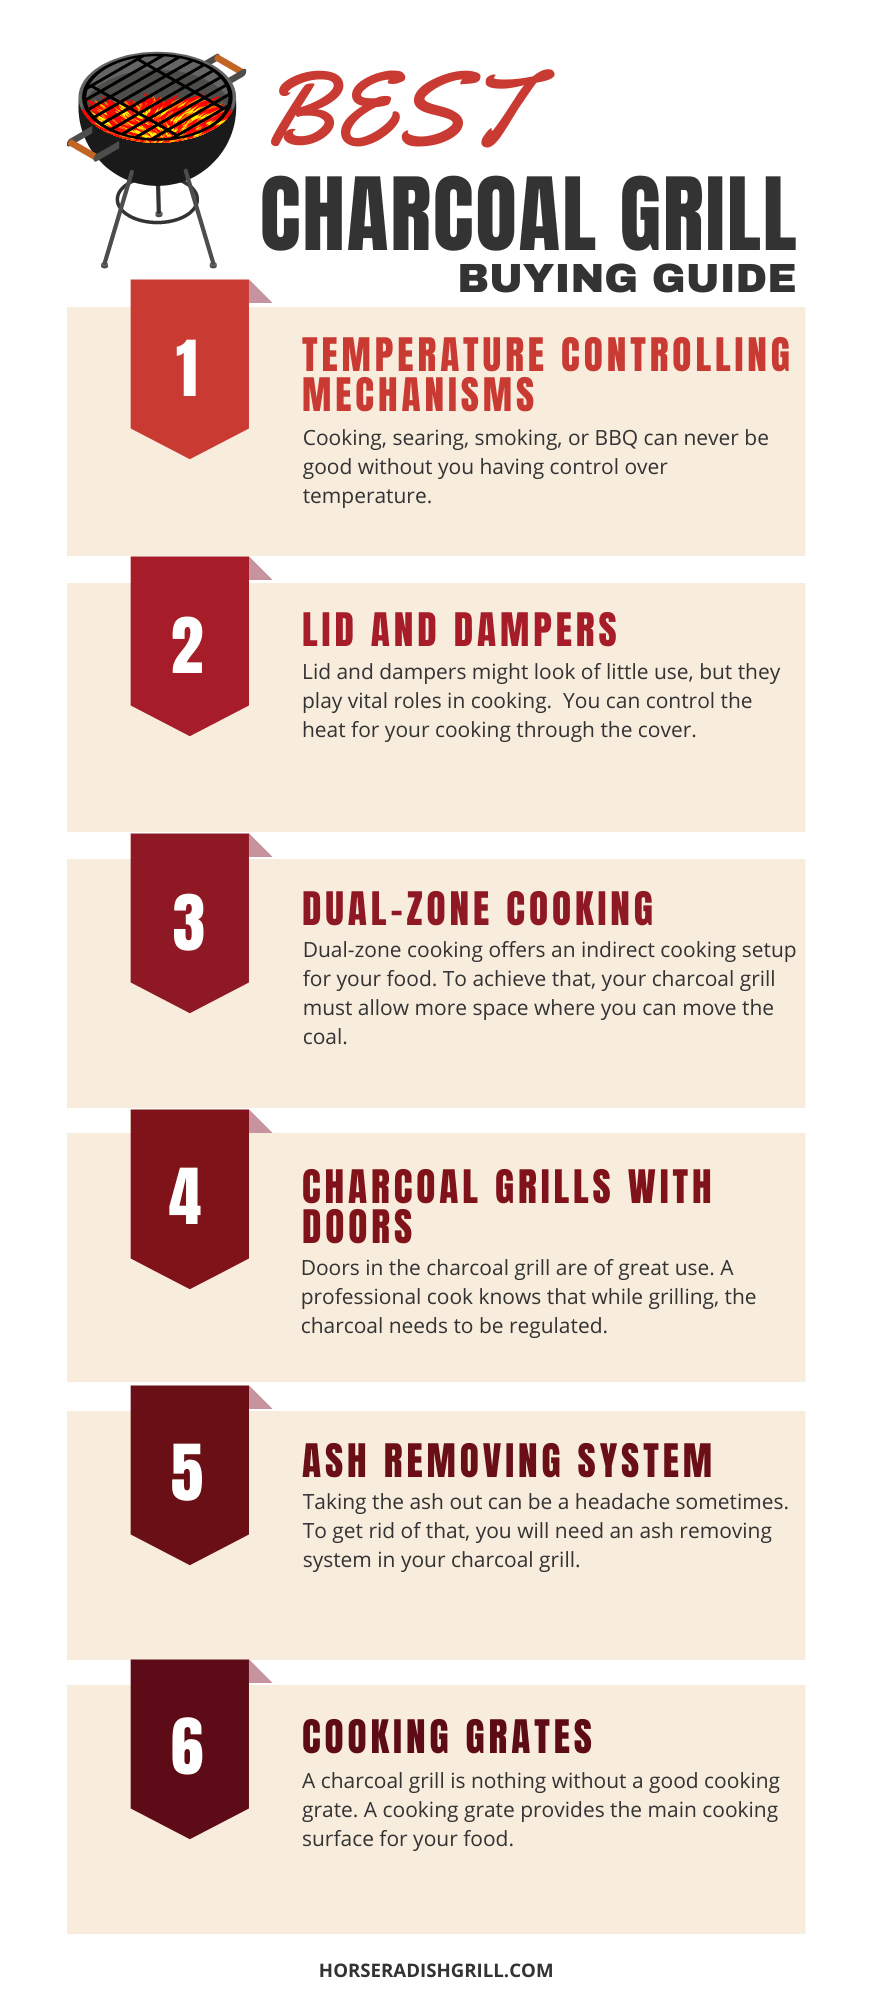 How to find the perfect charcoal grill